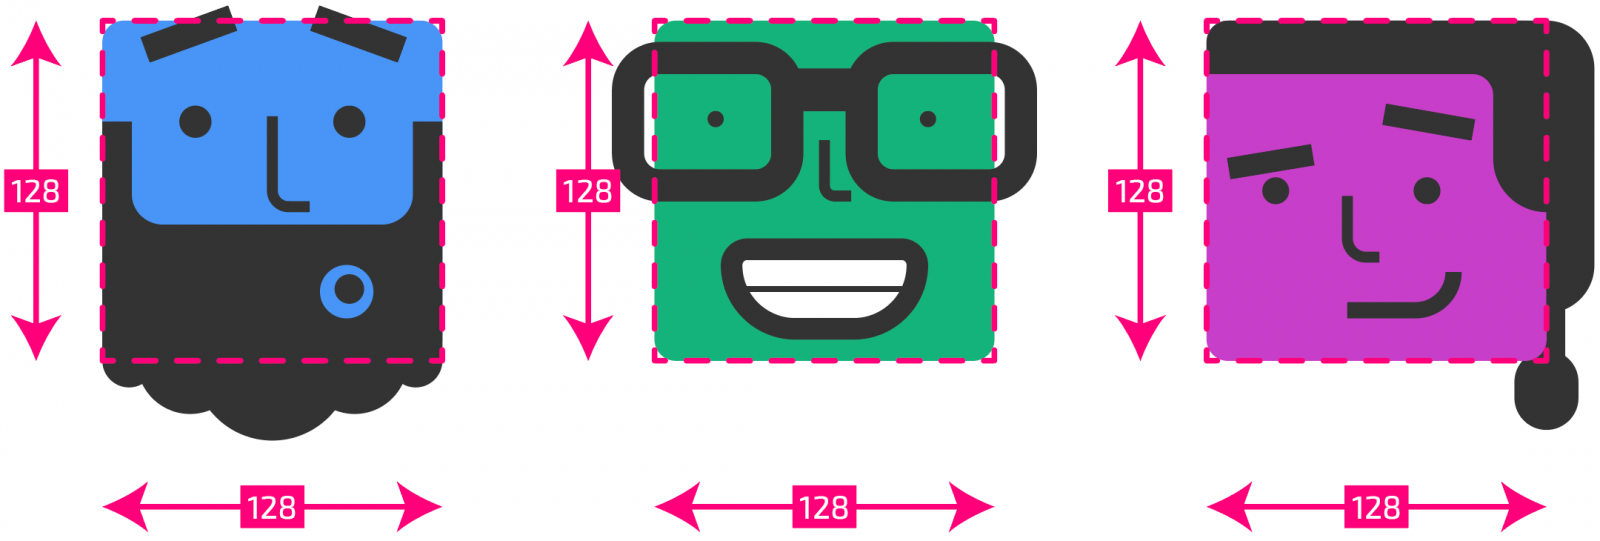 Illustrator artboards with their measurements overlaid on top, showing a consistent 128 x 128px.